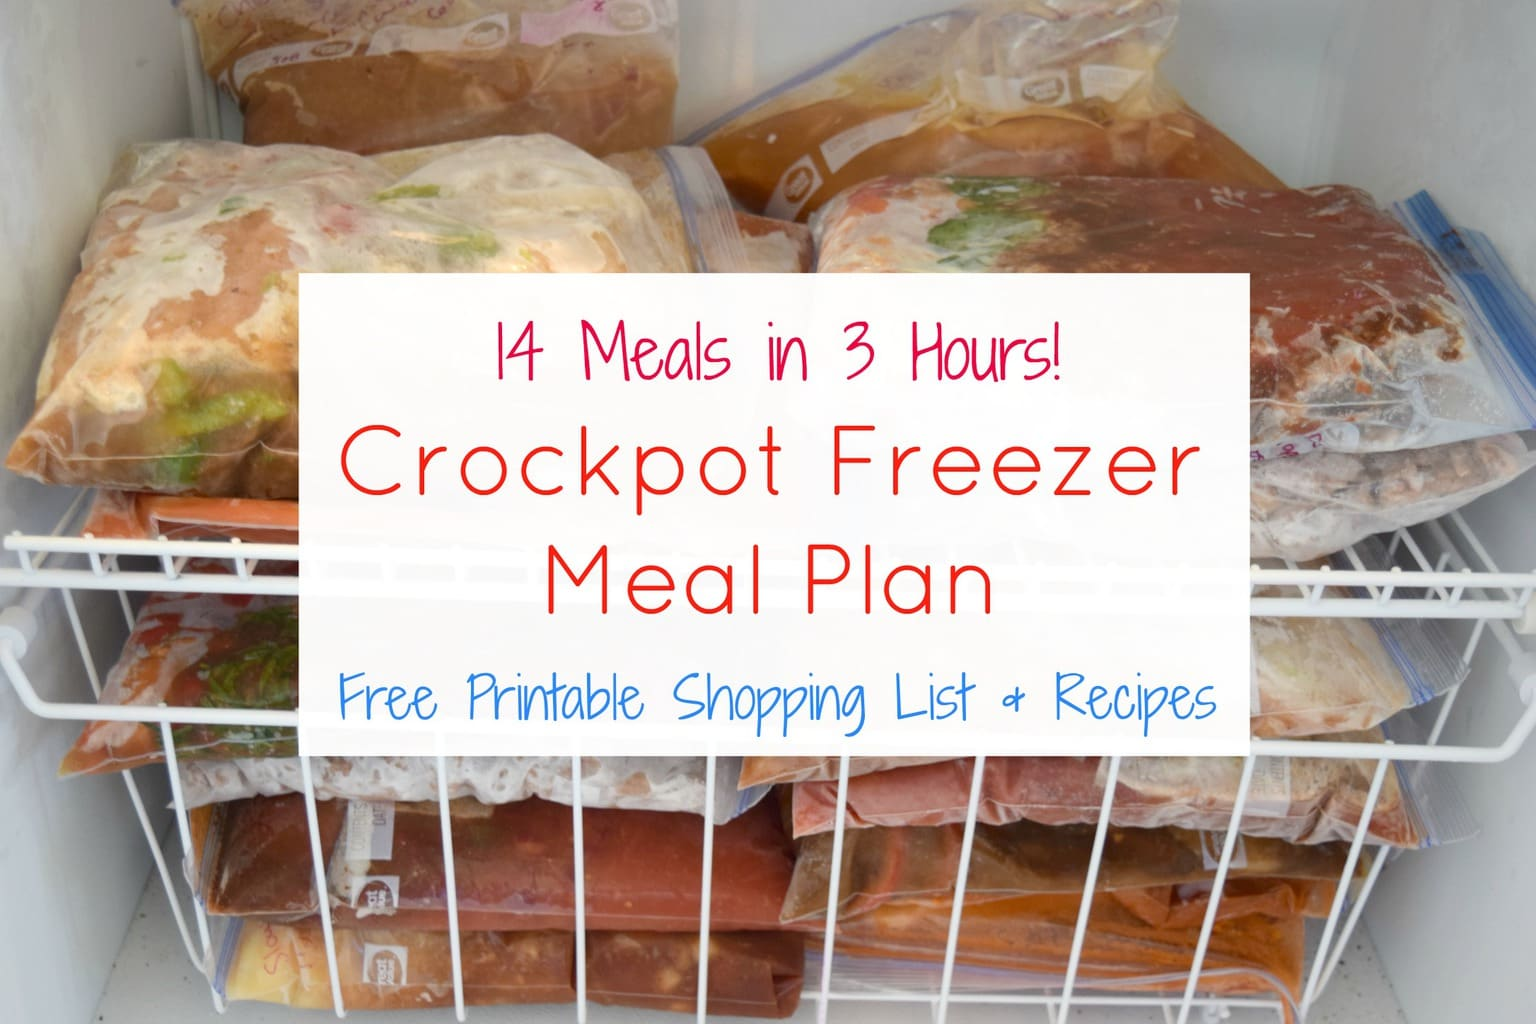 A freezer full of crockpot freezer meals.